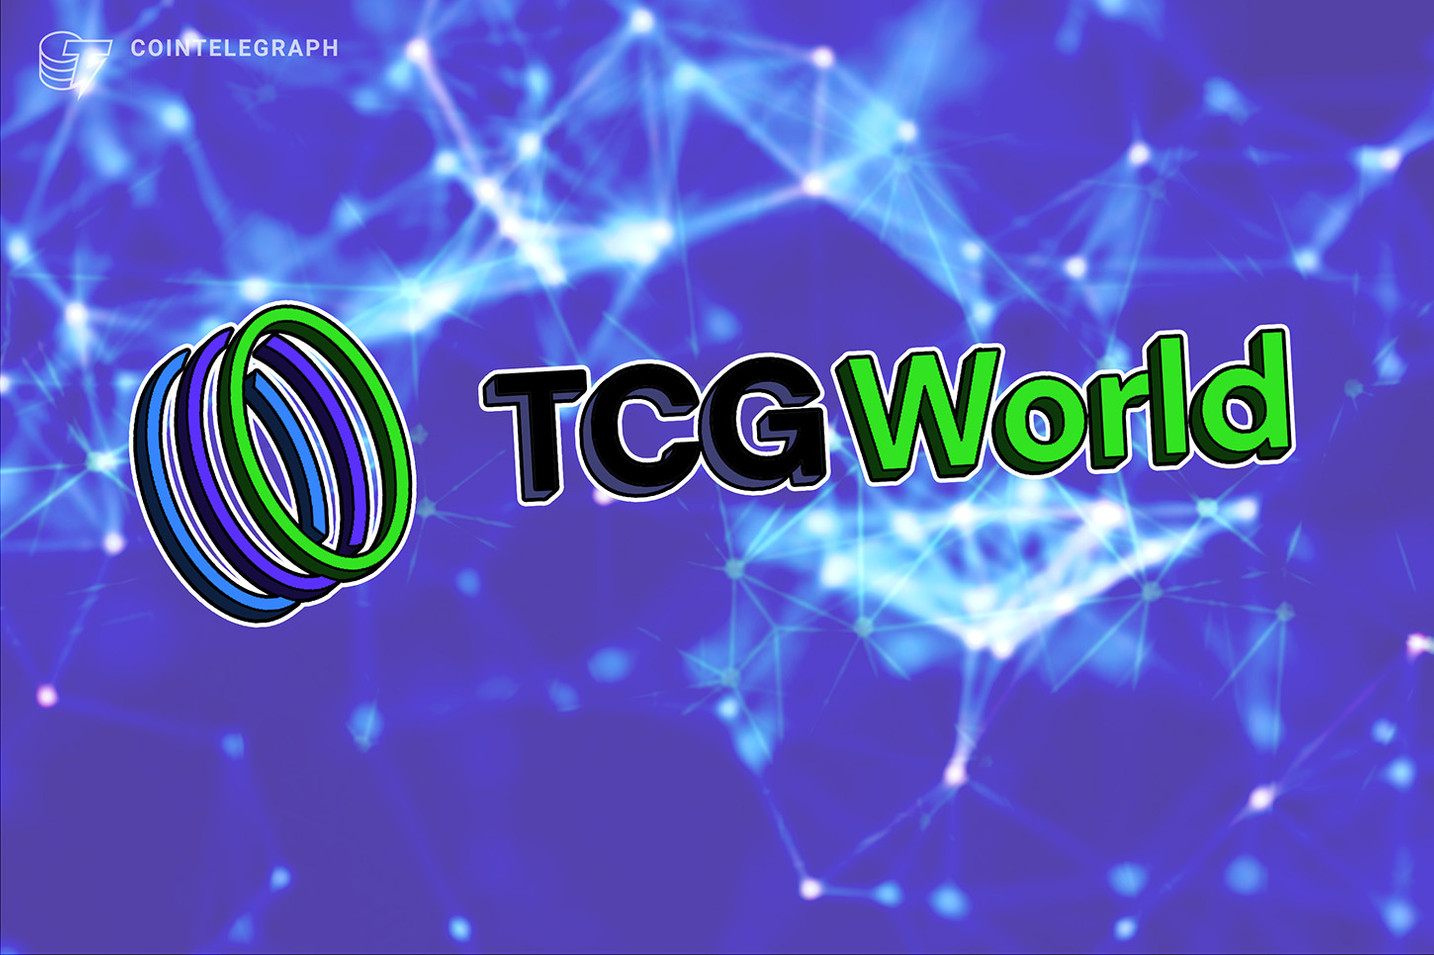 Virtual Land sales reach over $1M in TCG World, a blockchain based game